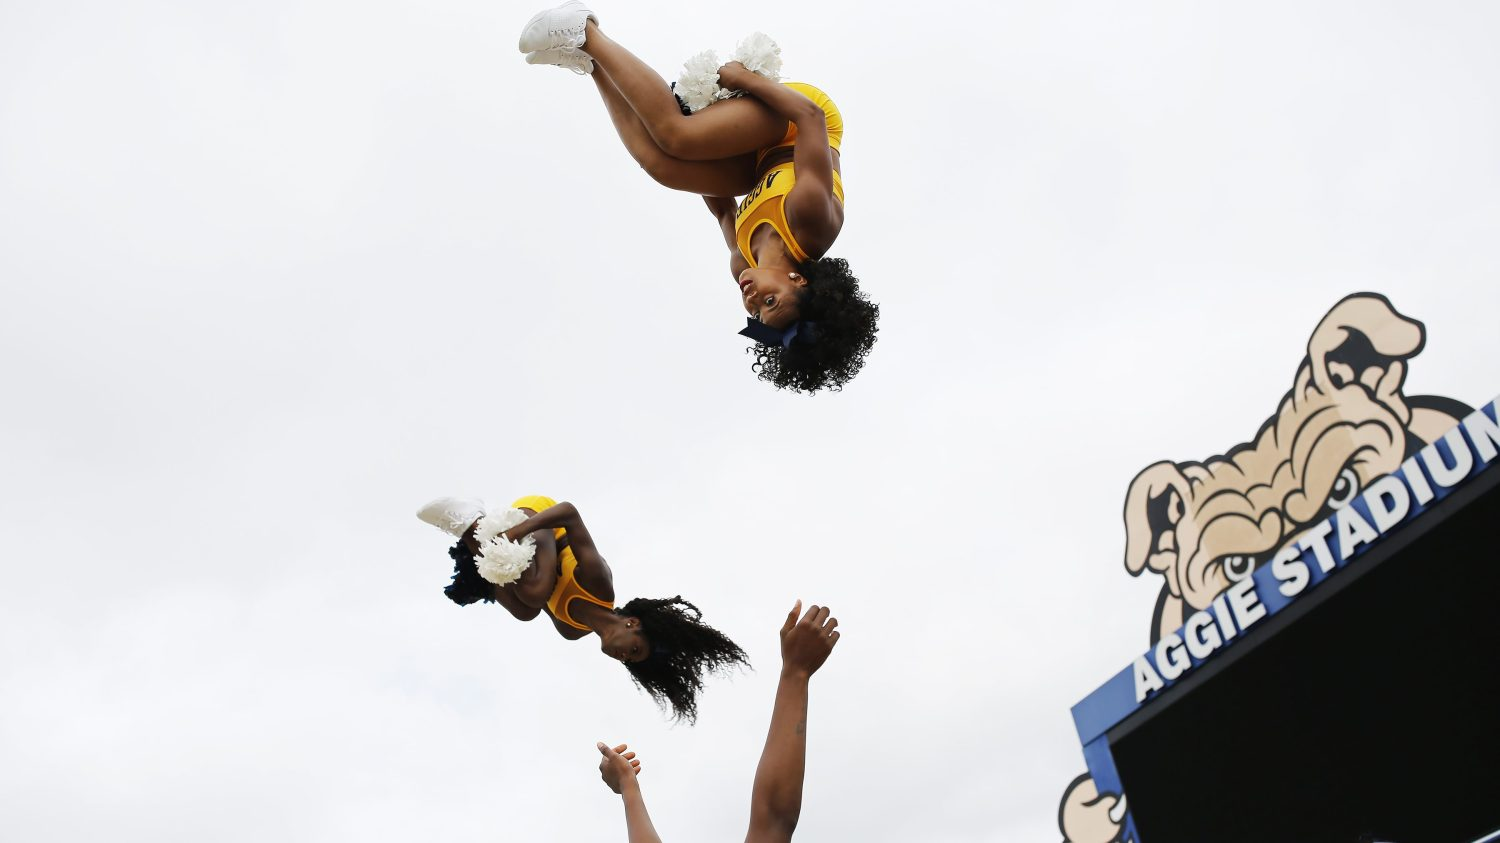 North Carolina A&T Cheer Squad